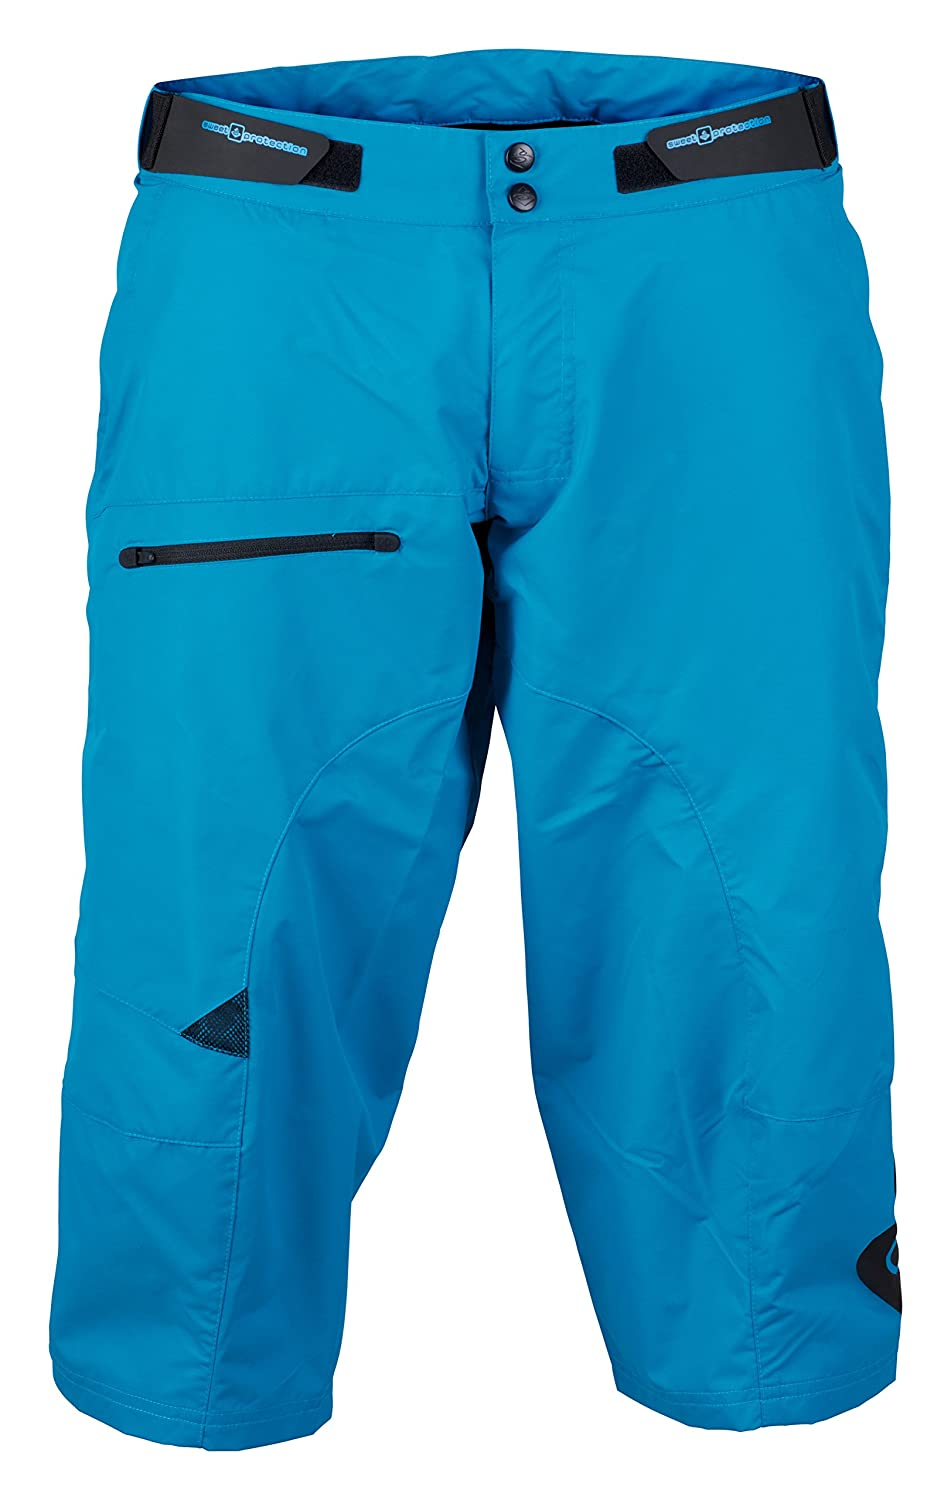 珍しい Sweet保護Shambala Paddle Short – Men Sweet保護Shambala 's X-Large Bird Blue 's Blue B01C79S9OA, 名入れボールゴルフギフトゴルゴル:9e645afb --- senas.4x4.lt